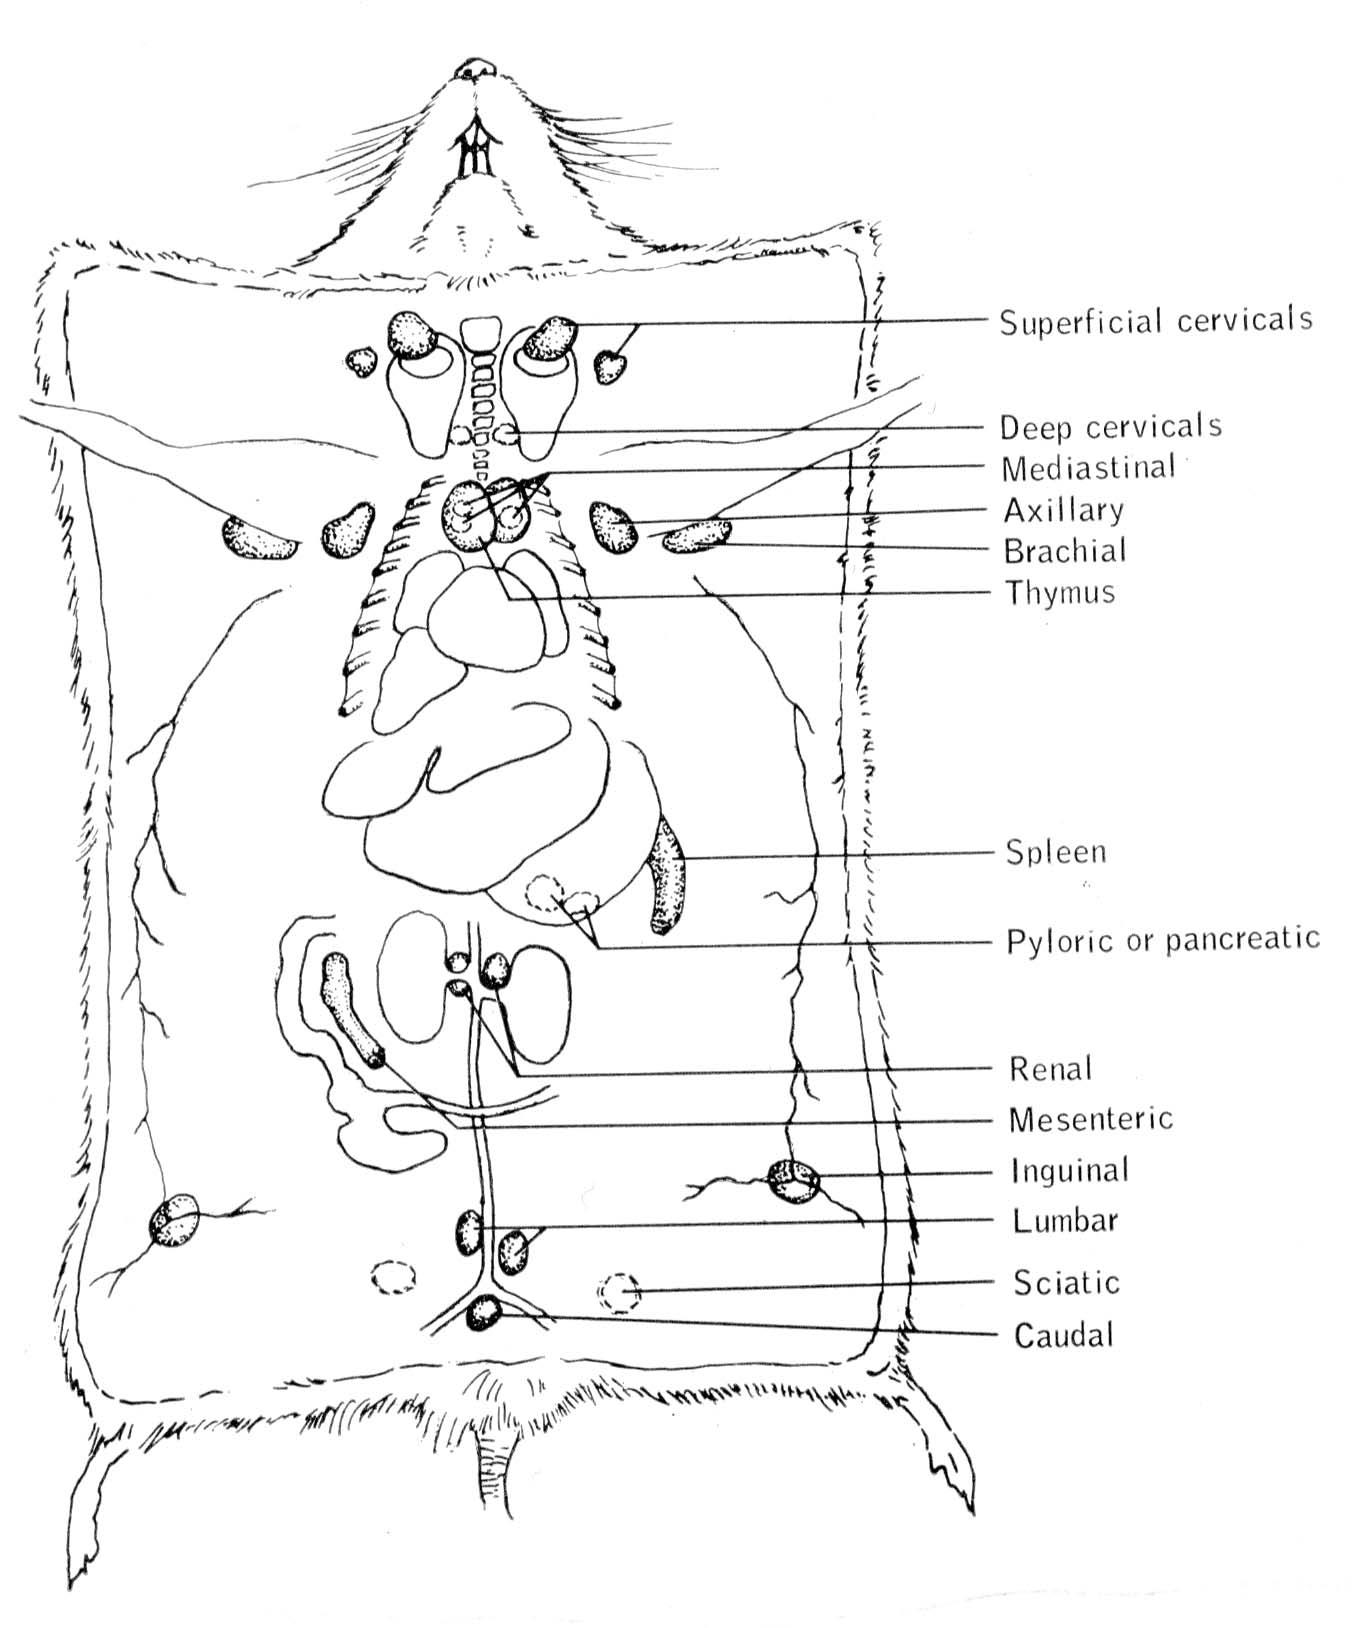 hight resolution of 5 scheme reporting localization of the lymphatic system from t b dunn 1954 courtesy of the author click on the image for a larger version